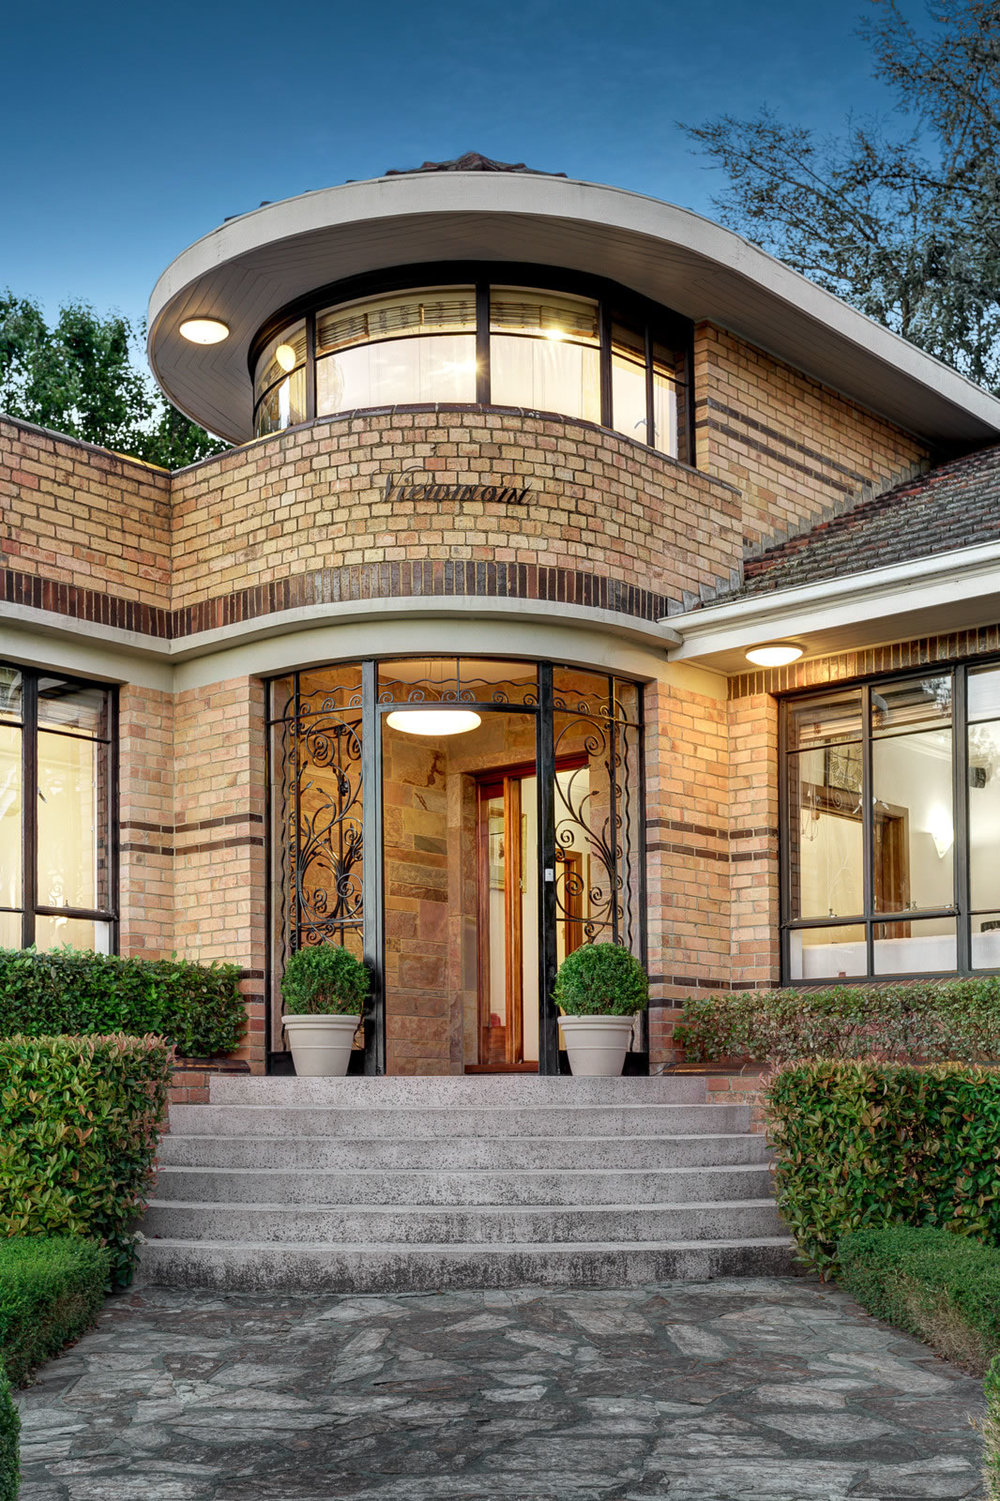 Historical Architectural Style The Art Deco Waterfall House